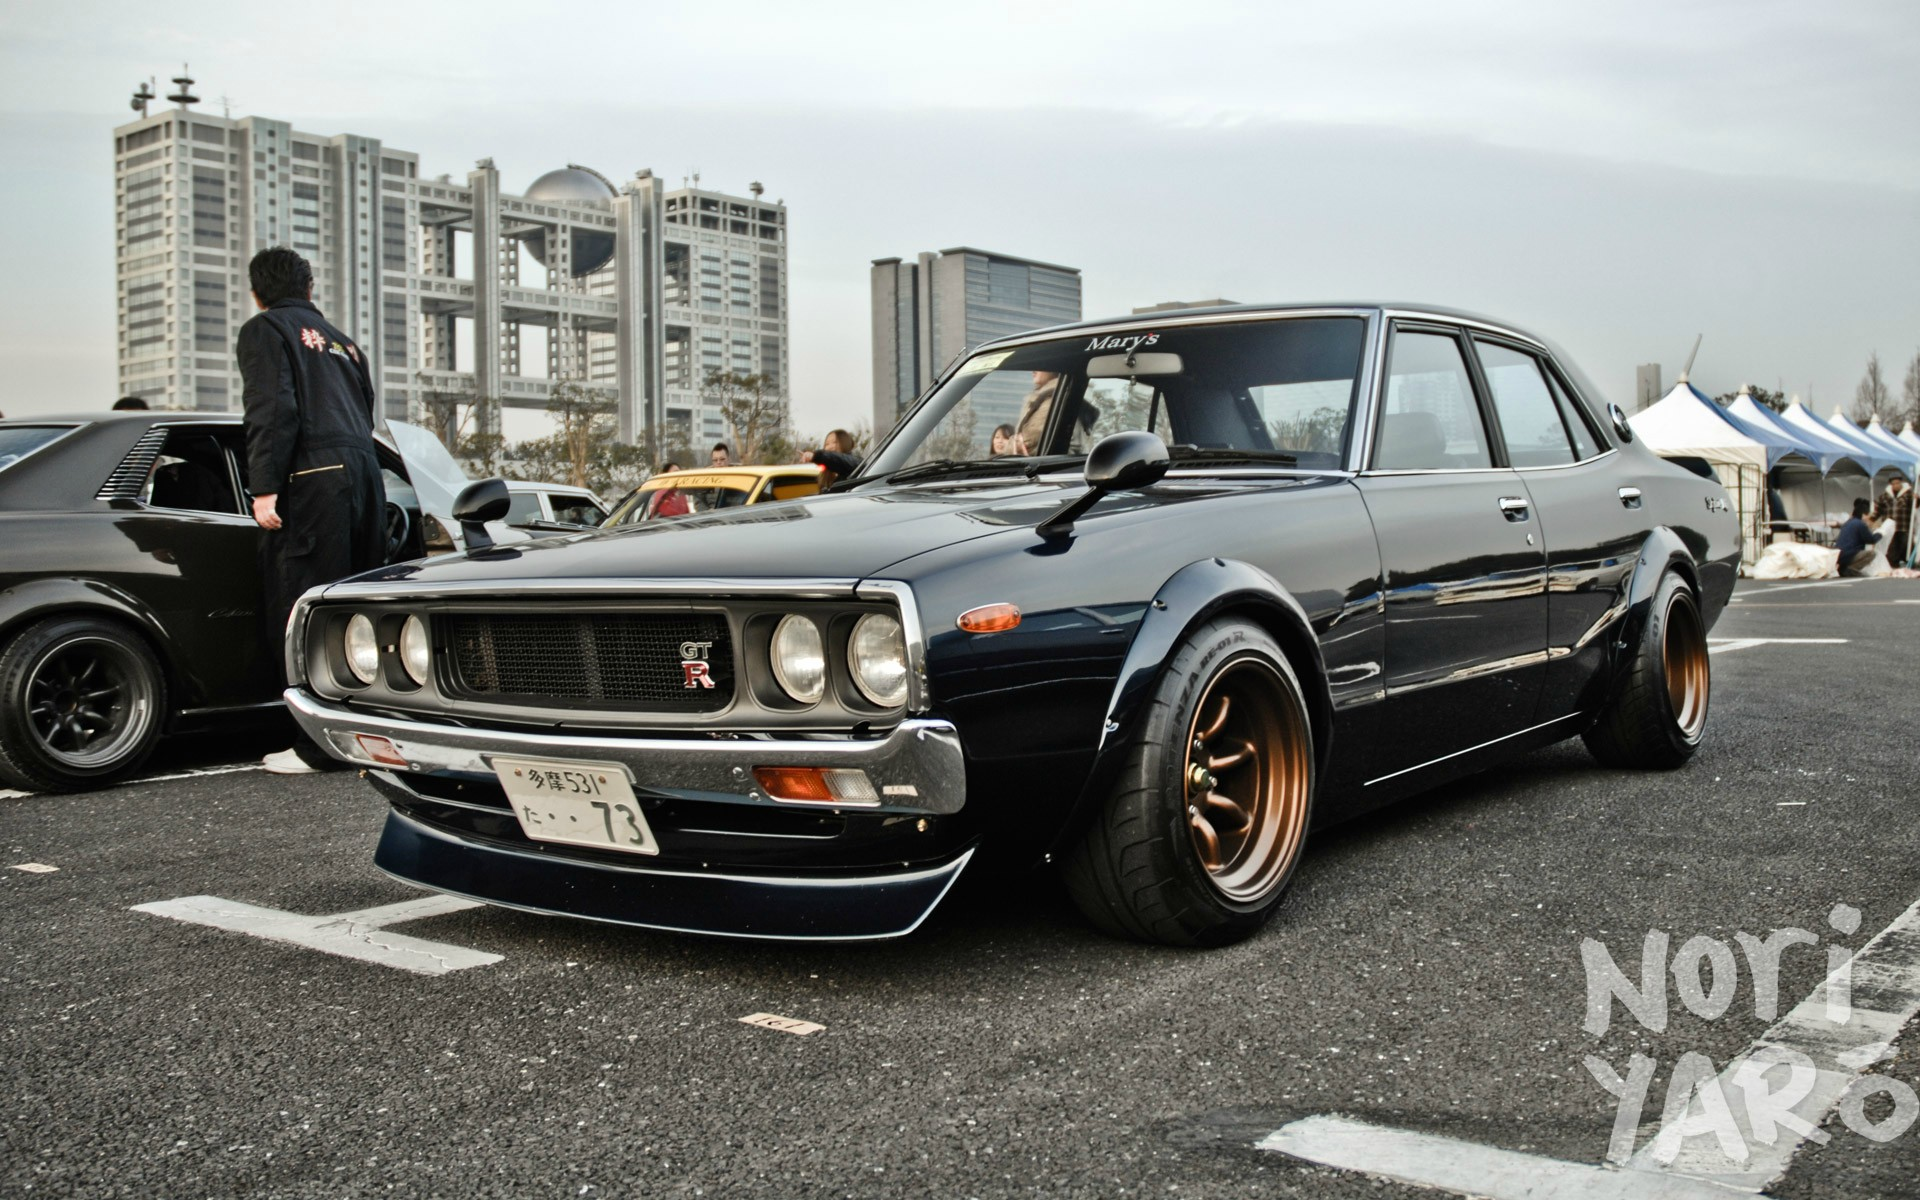 Datsun 510 Hellaflush wallpaper 1920x1200 8100 1920x1200